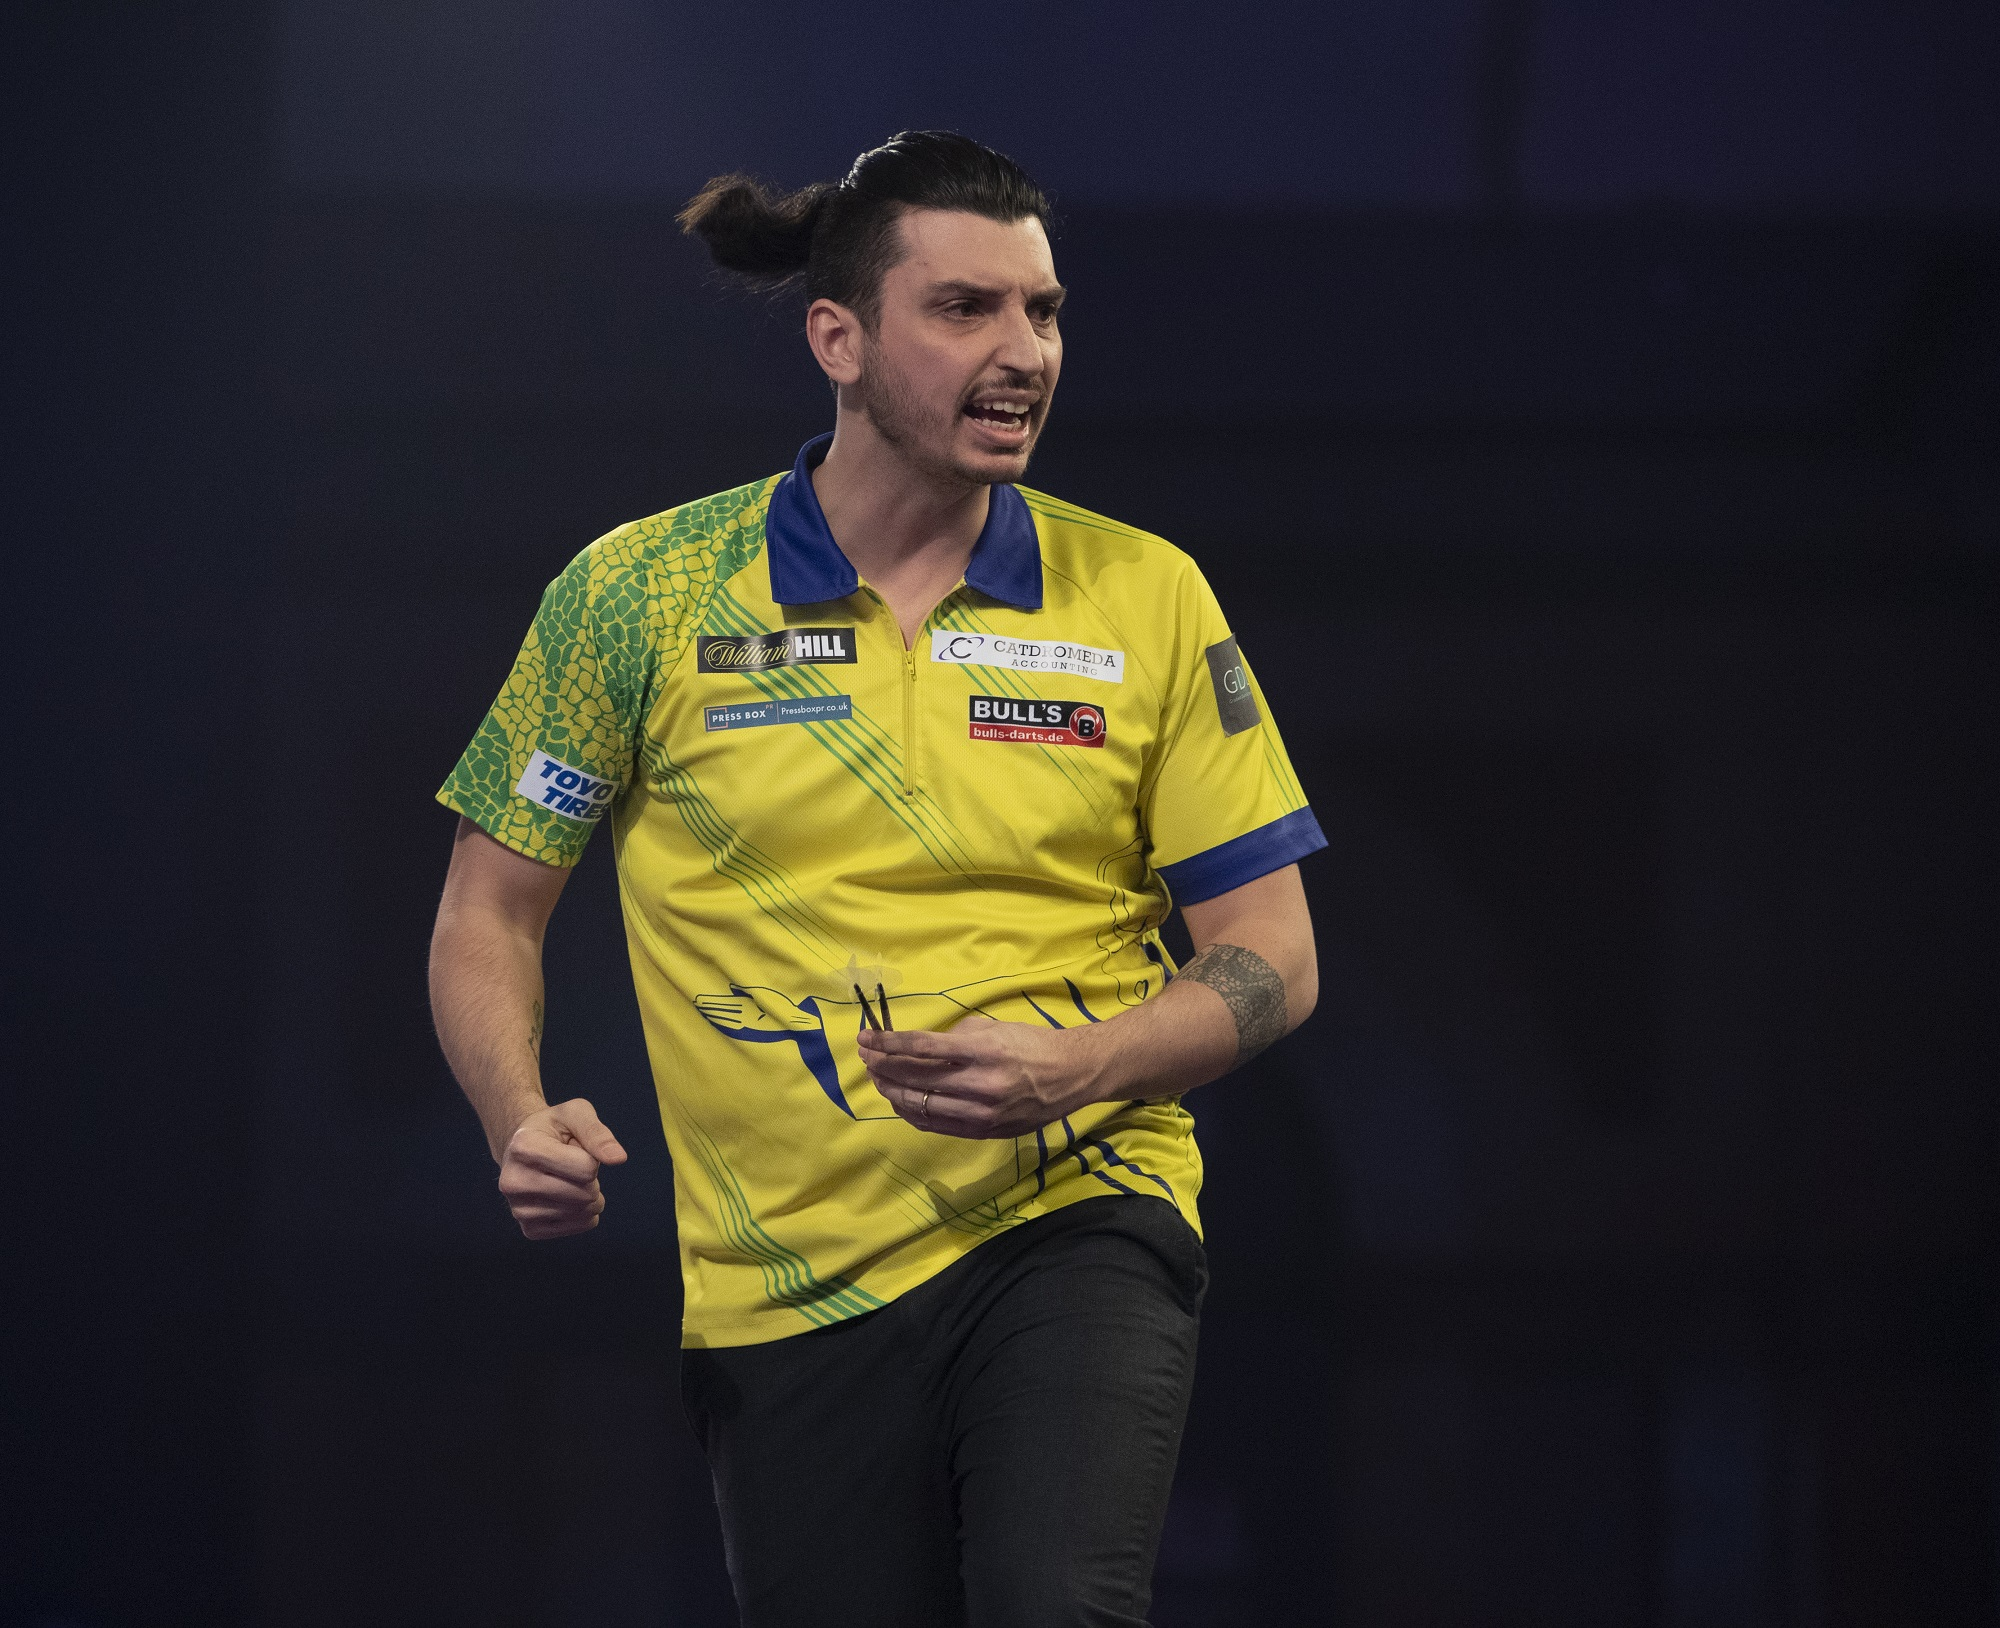 """Diogo Portela after World Darts Championship win: """"I was thinking about killing myself"""""""